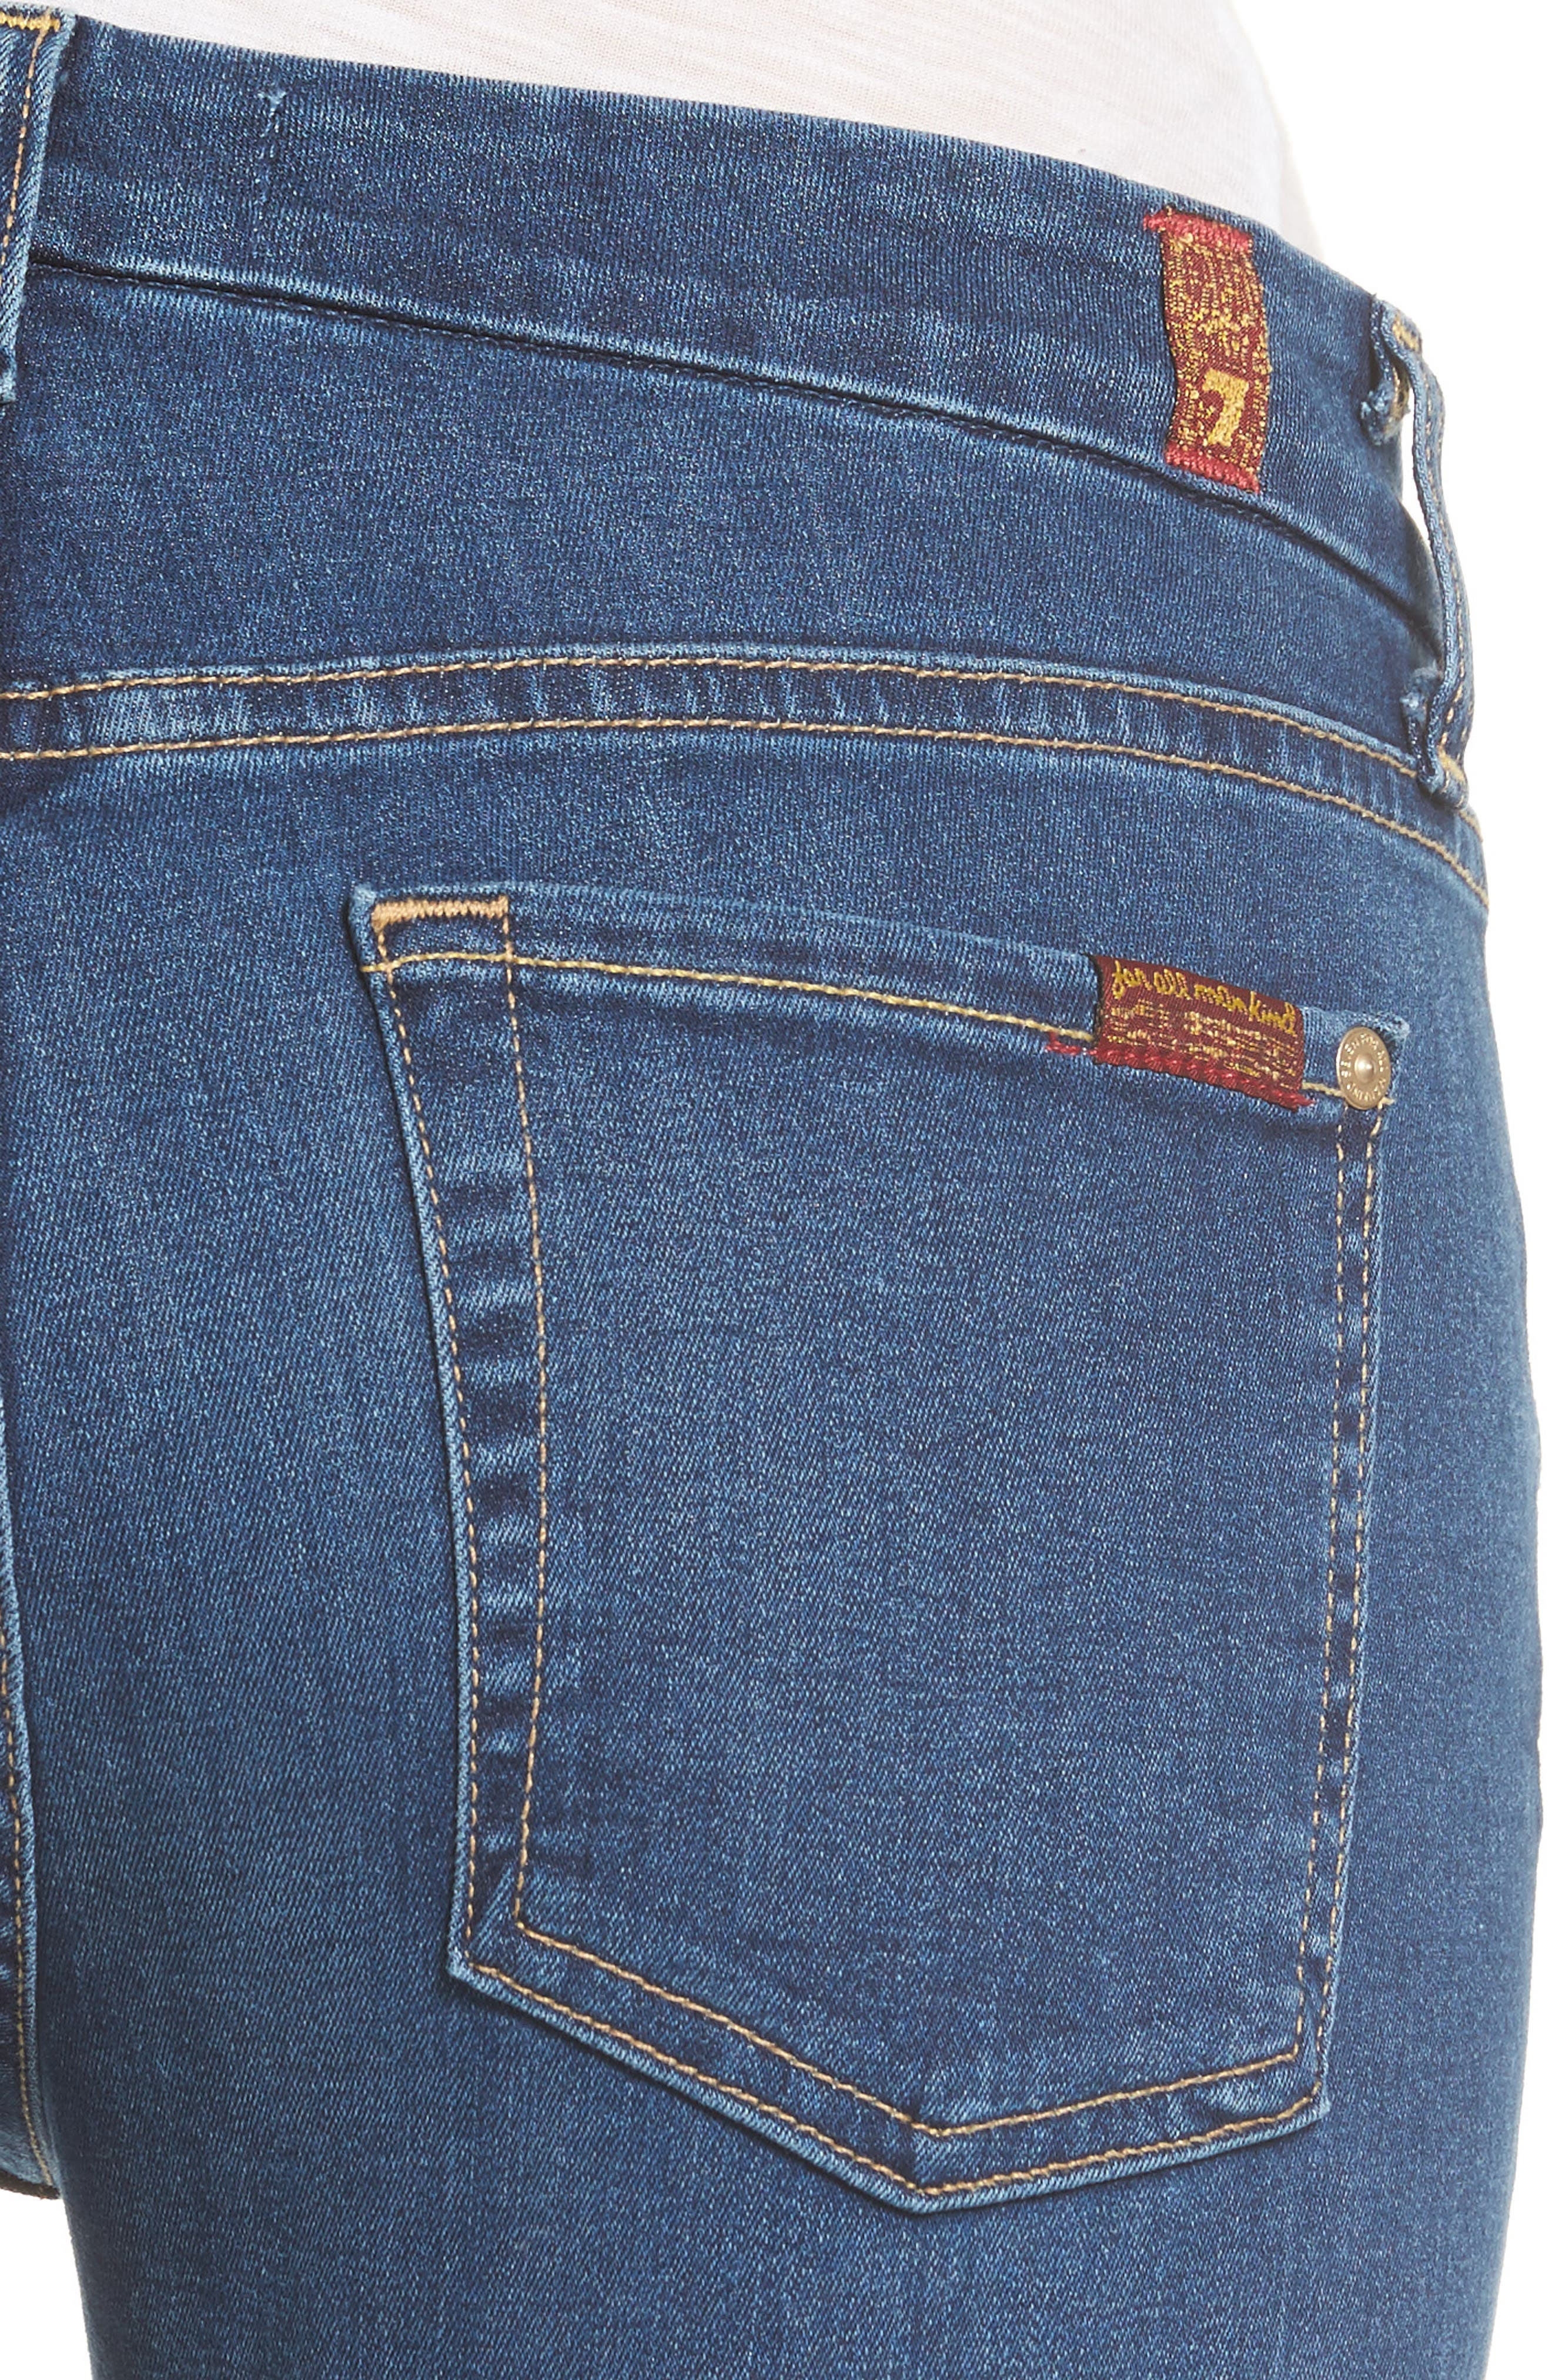 7 FOR ALL MANKIND<SUP>®</SUP>, b(air) Raw Hem Ankle Skinny Jeans, Alternate thumbnail 4, color, BAIR REIGN